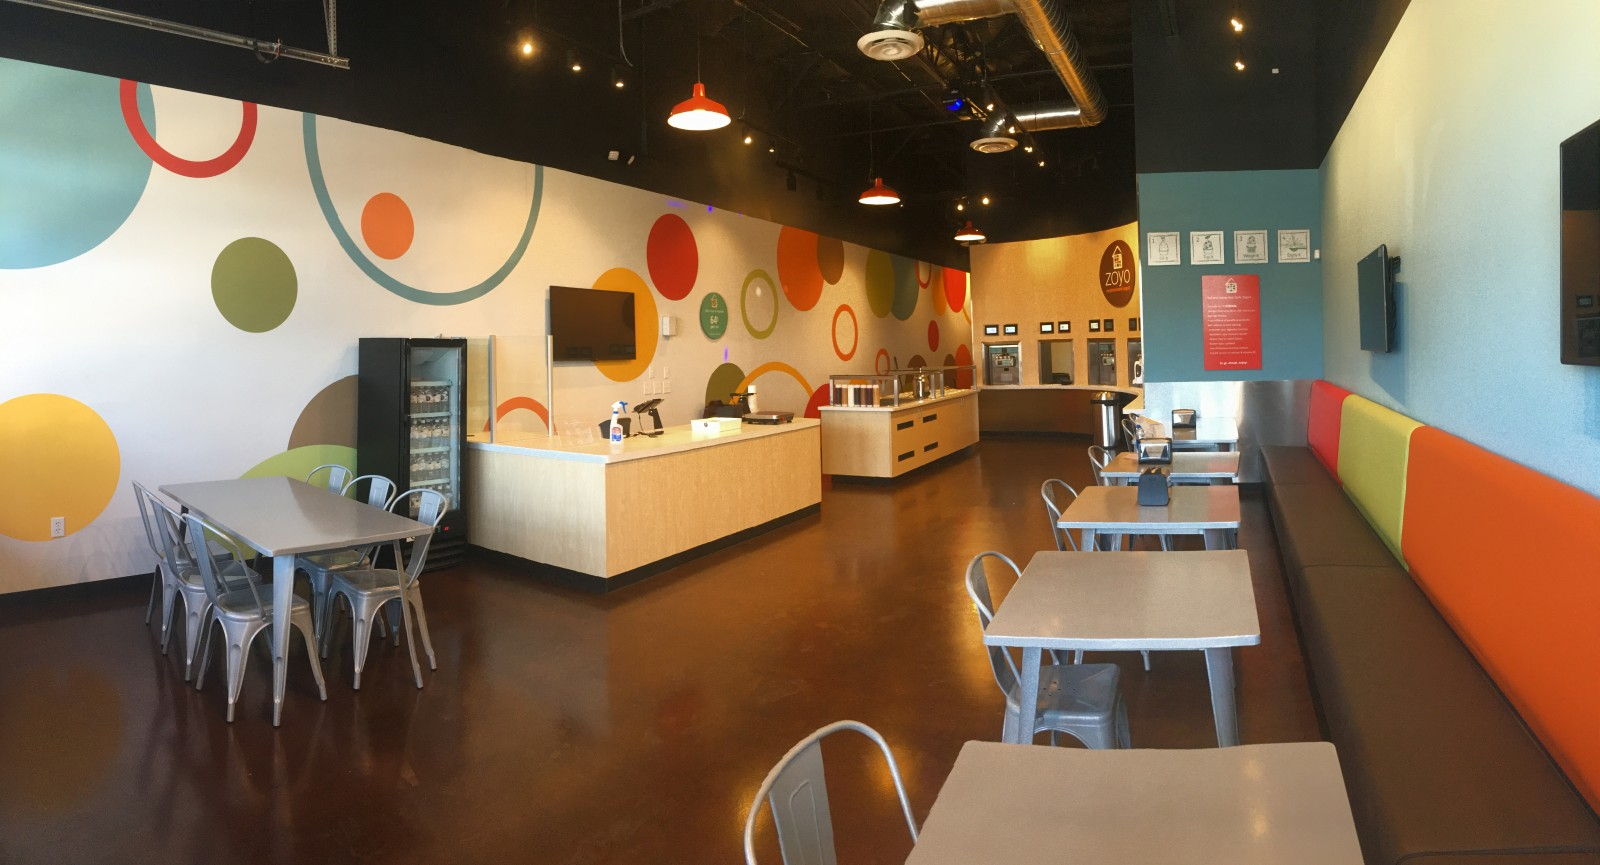 Zoyo Yogurt – Gilbert & Ocotillo